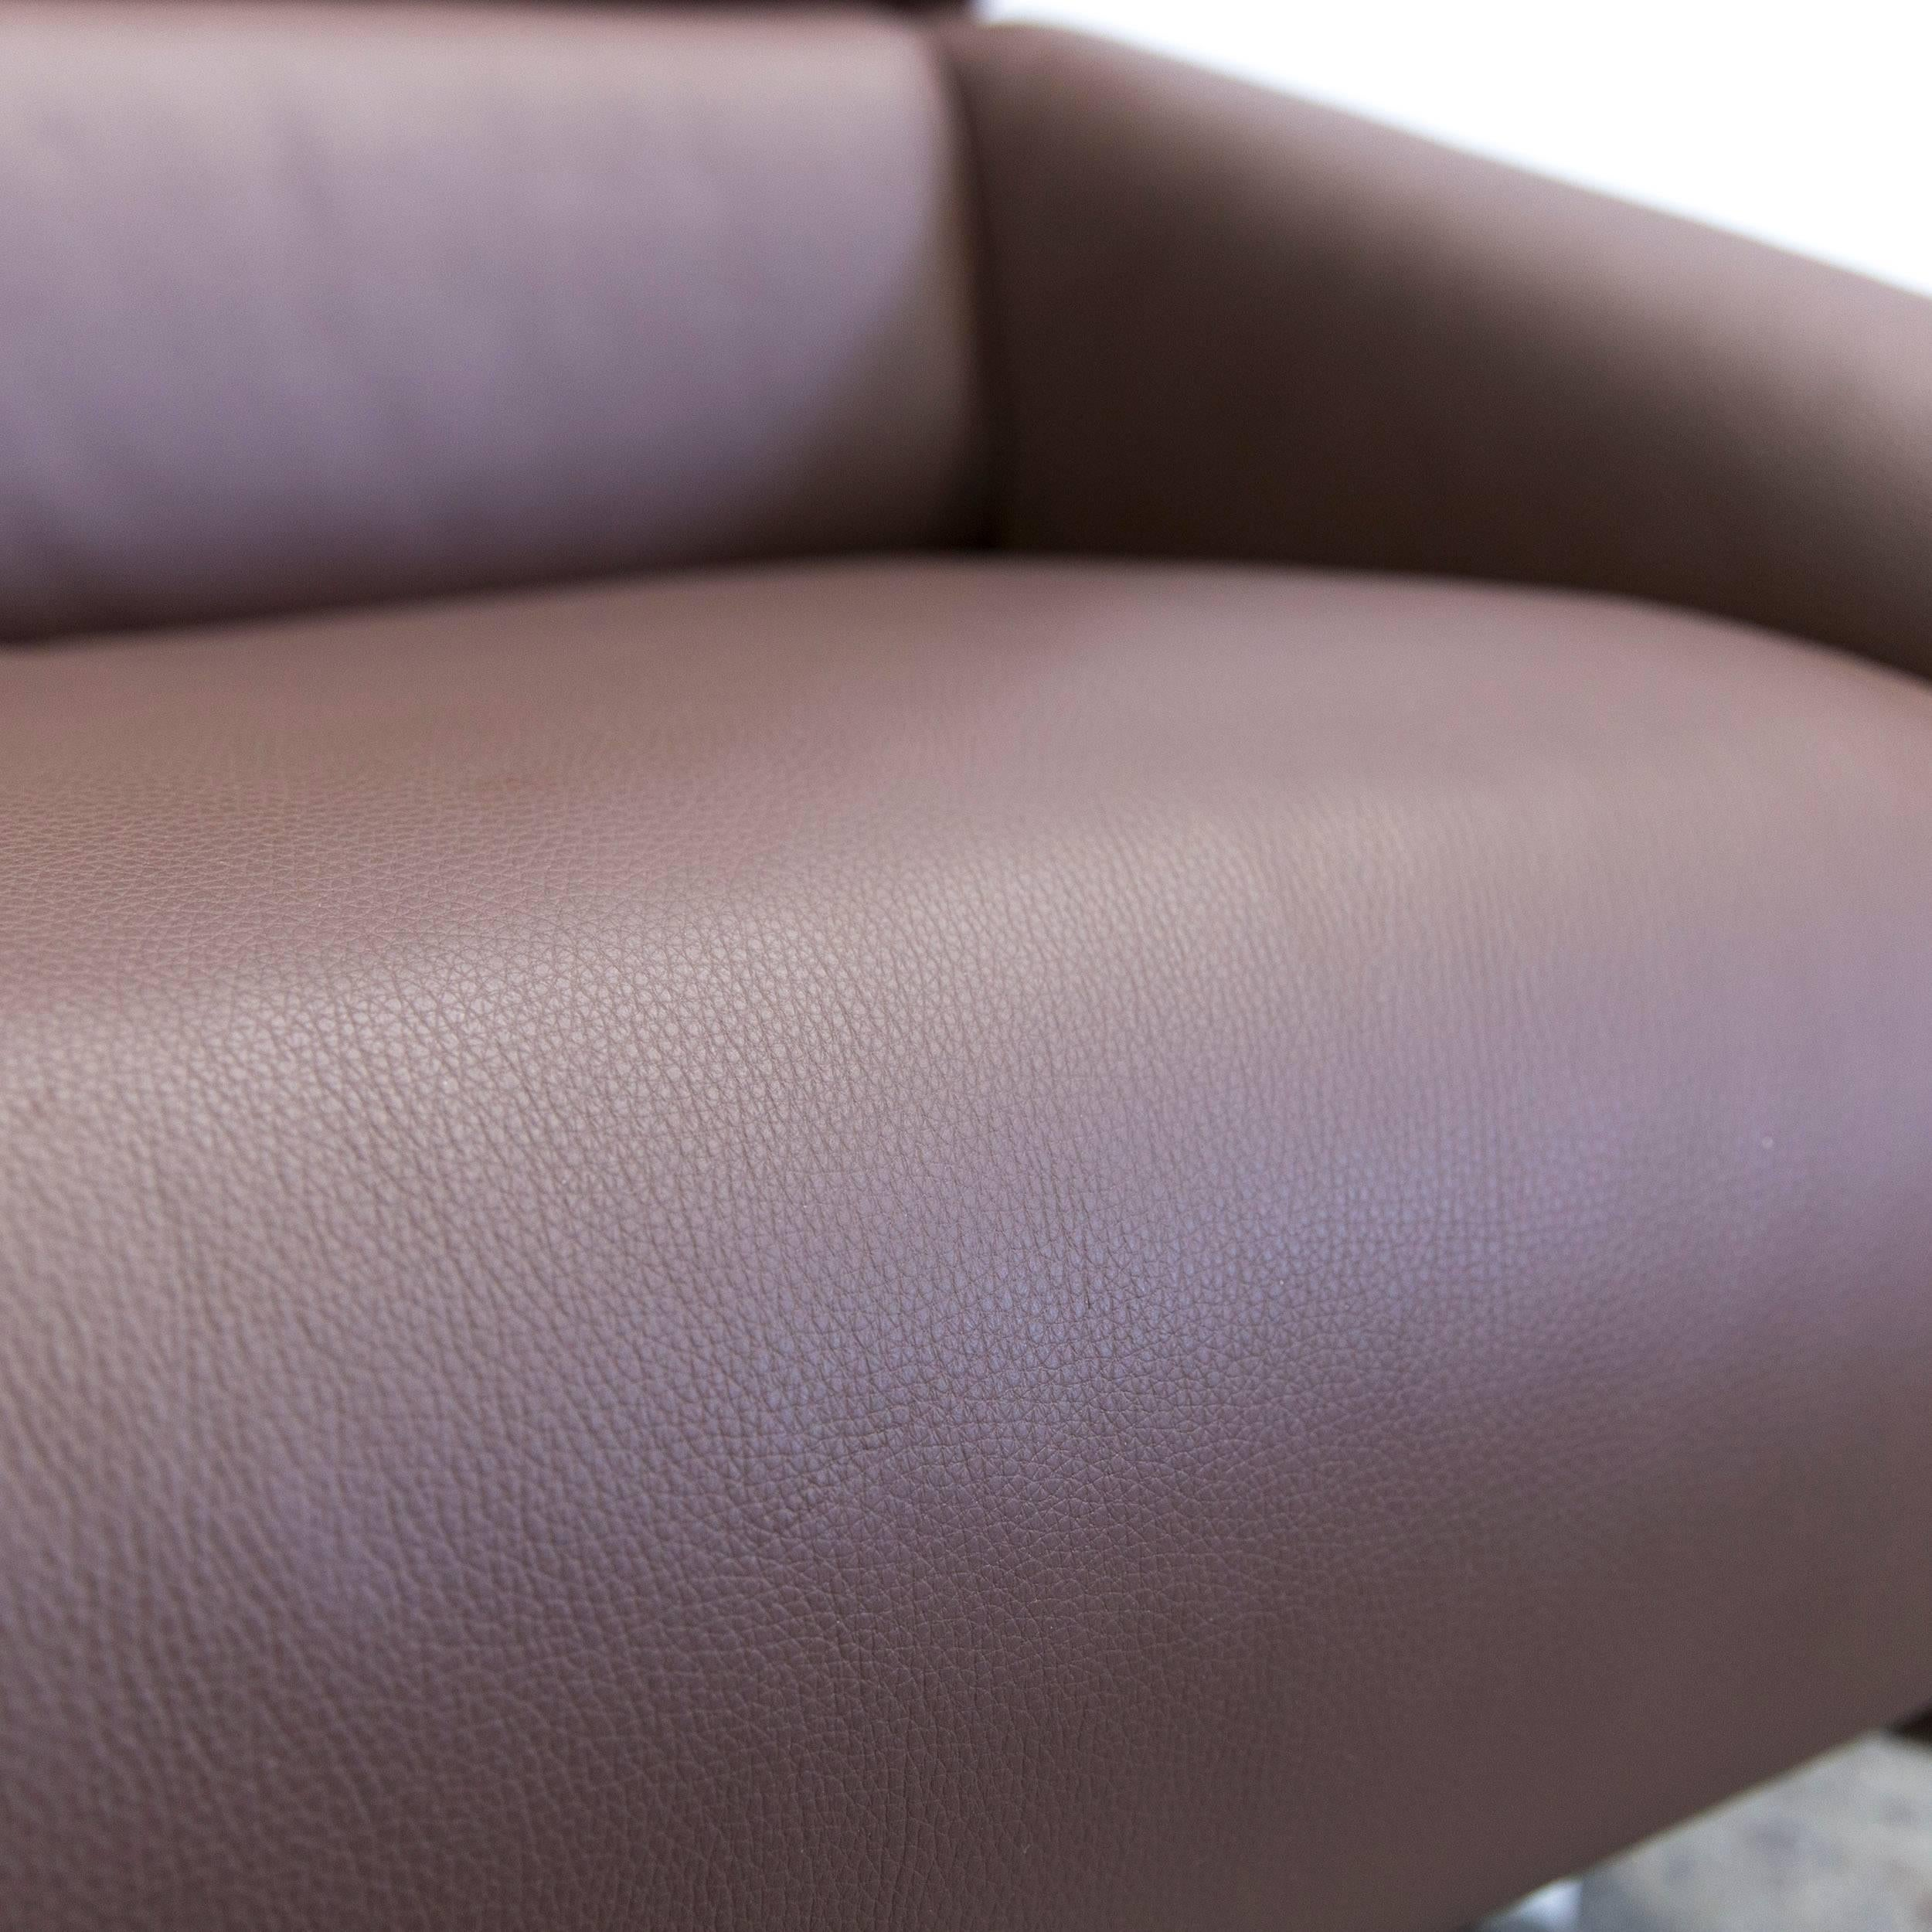 Fabulous Awesome Beautiful Fsm Ergo Designer Relax Armchair Leather Brown  One Seat Couch Modern For Sale At Stdibs With Couch Sessel Leder With Design  ...